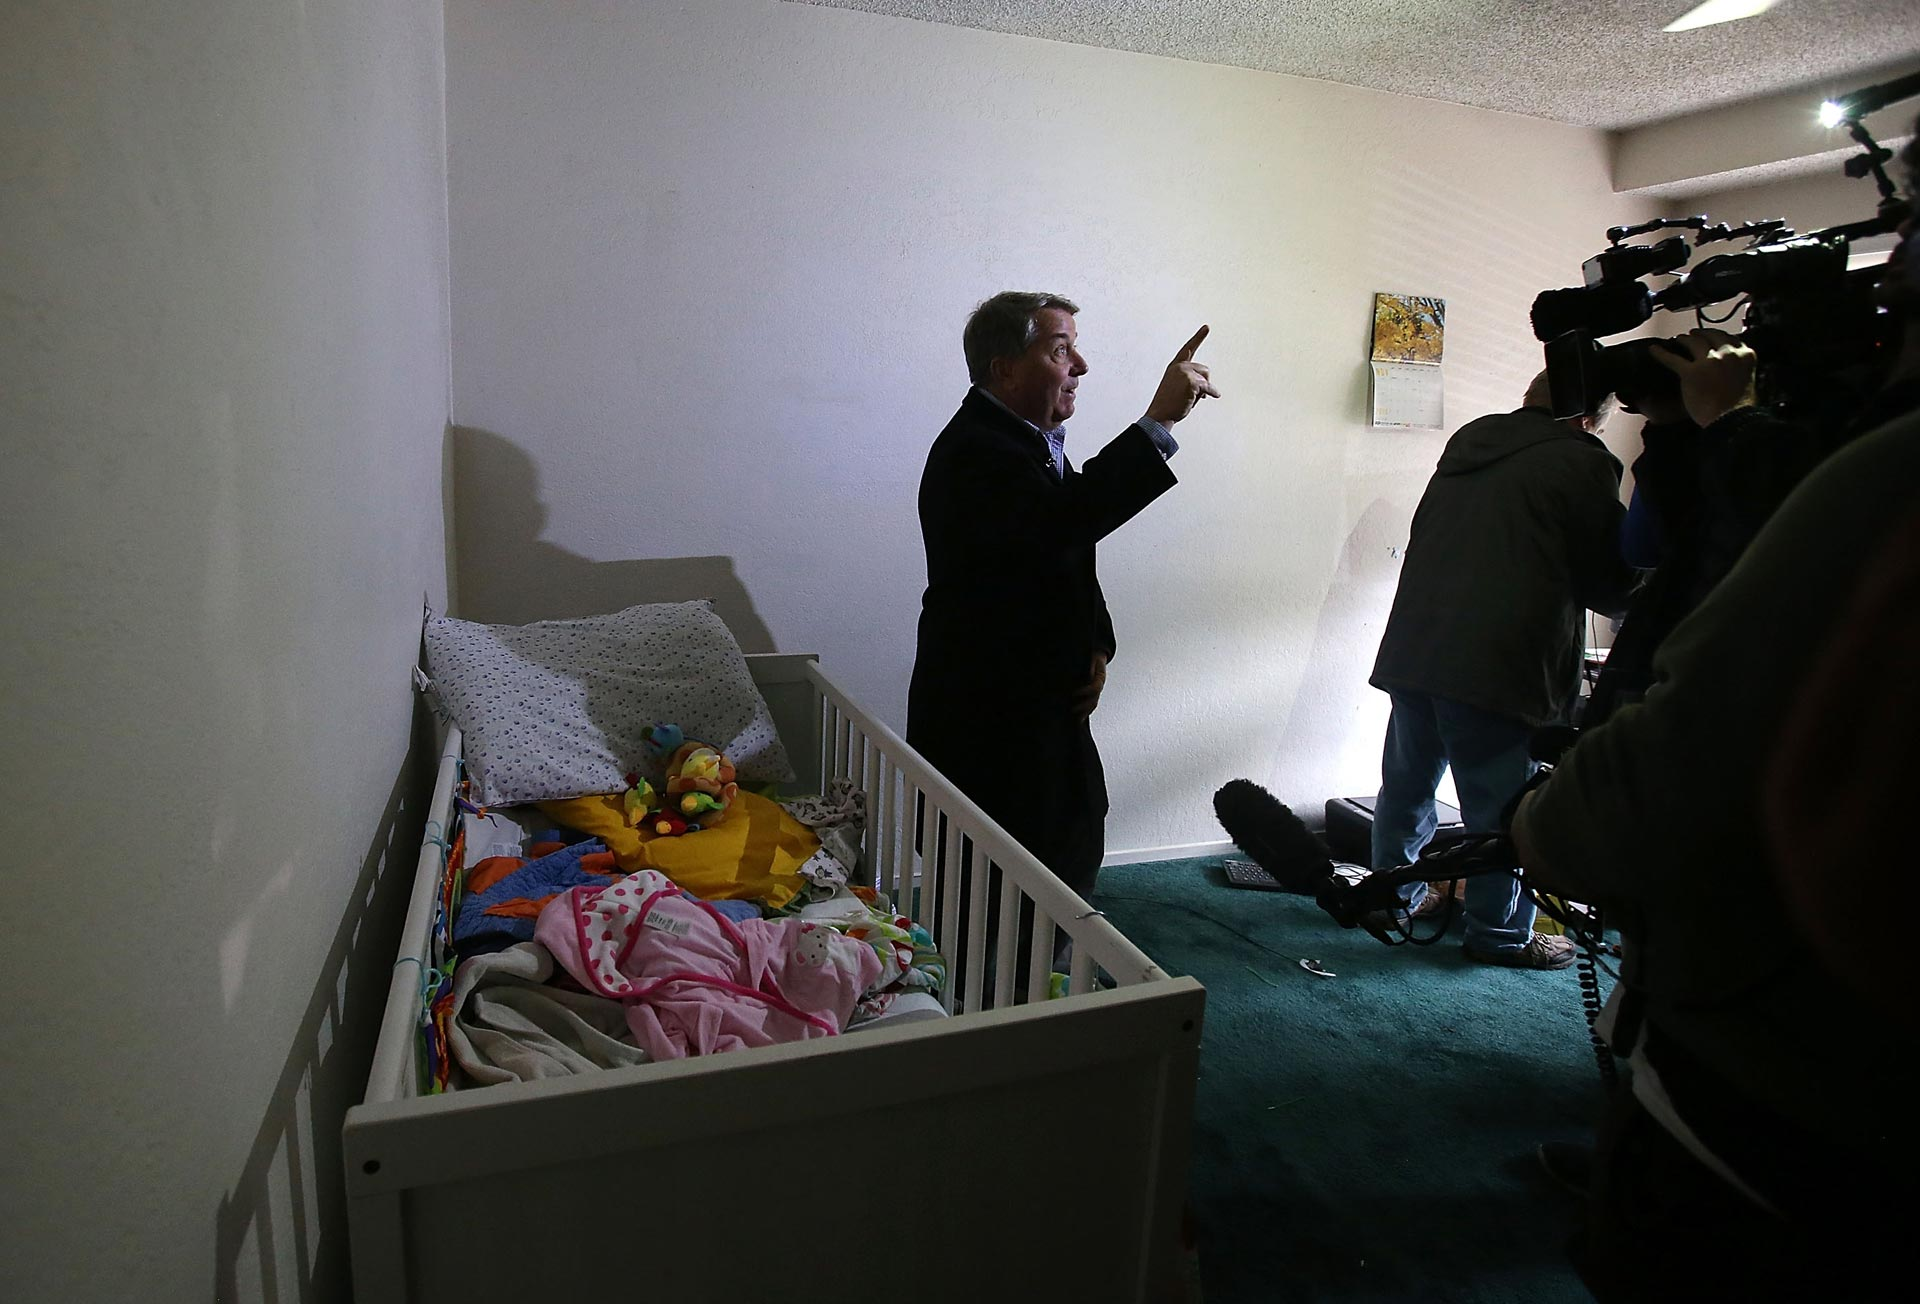 A reporter does a live shot inside the home of shooting suspect Syed Farook on Dec. 4, 2015 in San Bernardino.